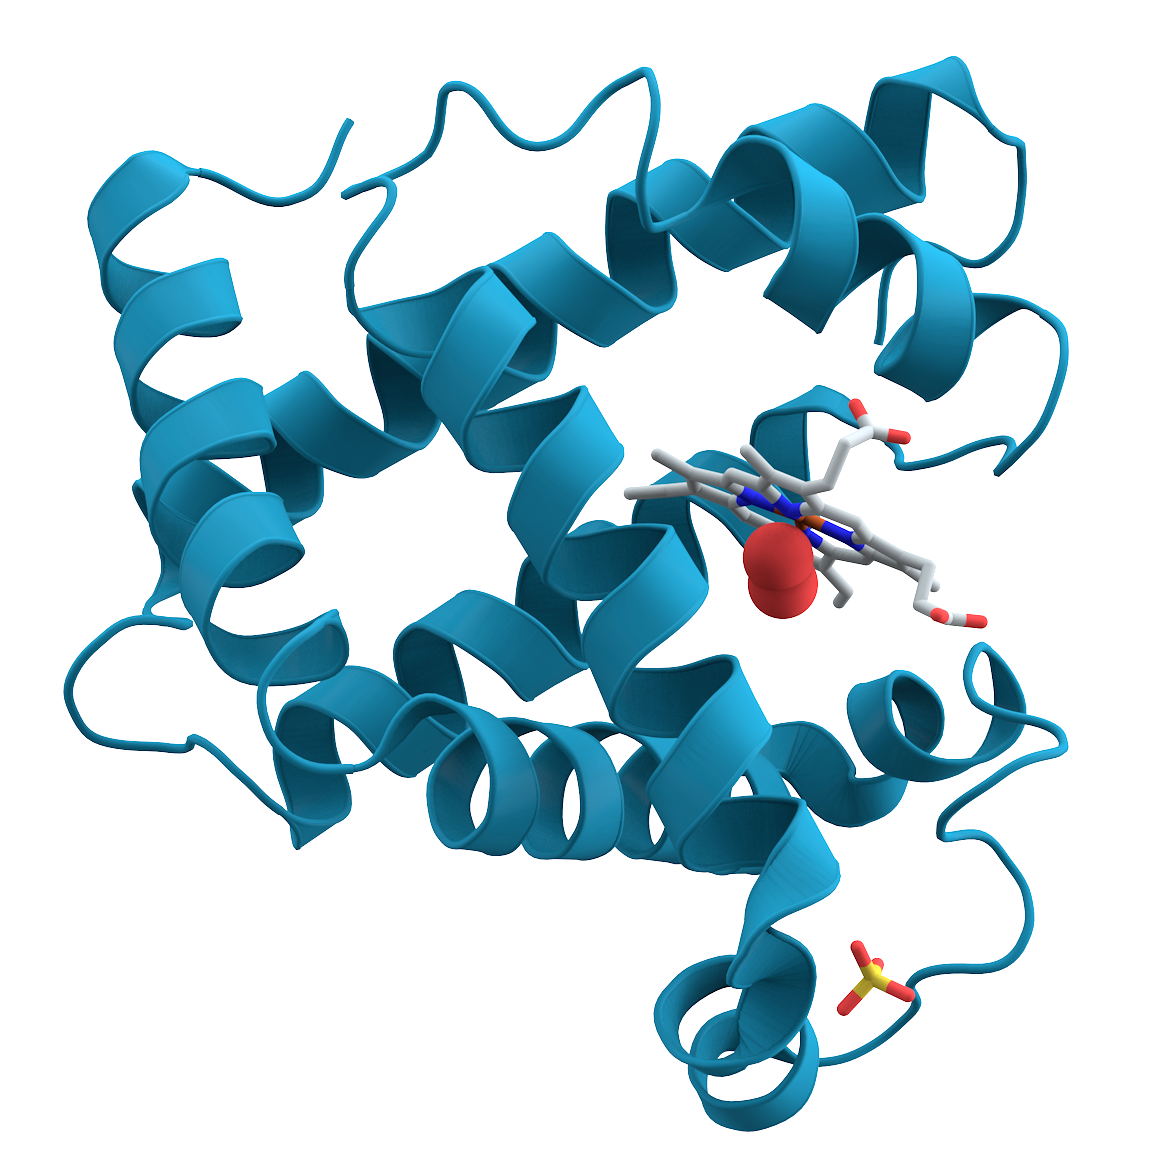 Protein wikipedia . Clipart definition oxford dictionary